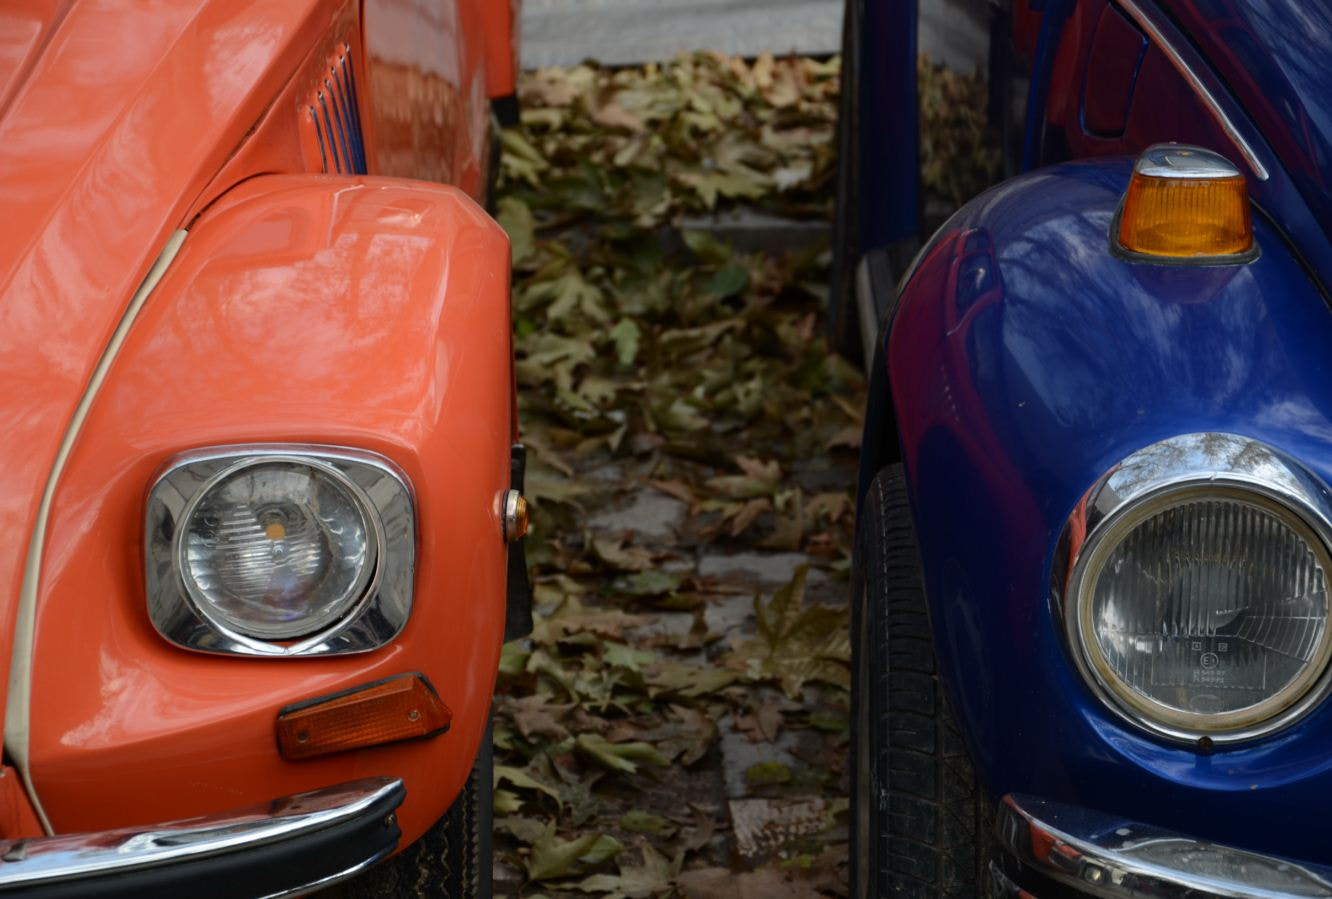 Photograph Jian and Volkswagen by Rouzbeh Khanzadeh on 500px